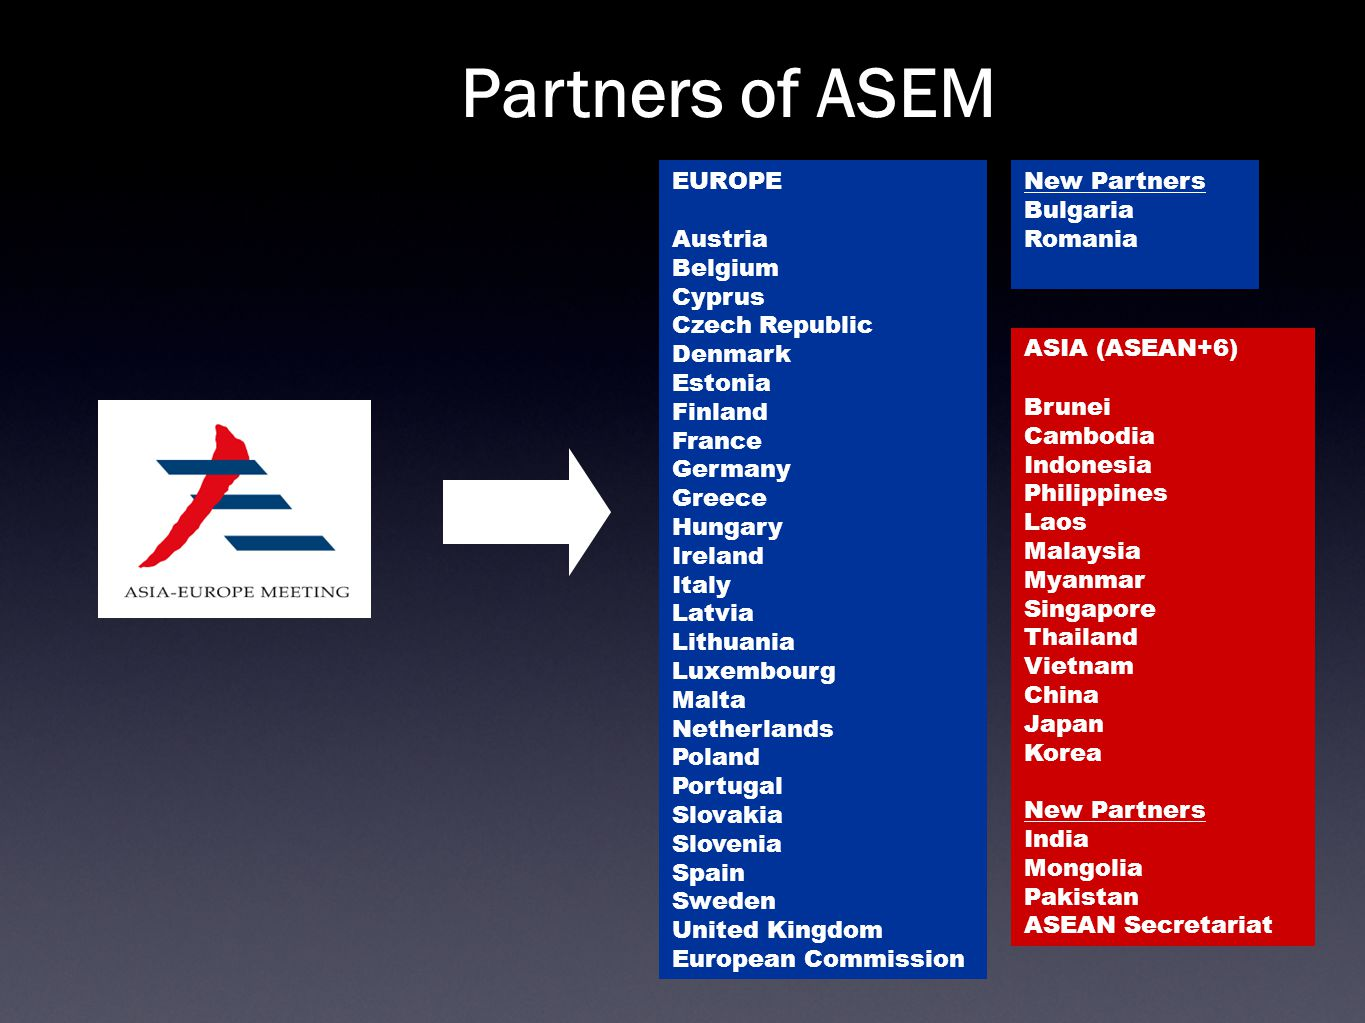 Partners of ASEM ASIA (ASEAN+6) ‏ Brunei Cambodia Indonesia Philippines Laos Malaysia Myanmar Singapore Thailand Vietnam China Japan Korea New Partners India Mongolia Pakistan ASEAN Secretariat New Partners Bulgaria Romania EUROPE Austria Belgium Cyprus Czech Republic Denmark Estonia Finland France Germany Greece Hungary Ireland Italy Latvia Lithuania Luxembourg Malta Netherlands Poland Portugal Slovakia Slovenia Spain Sweden United Kingdom European Commission